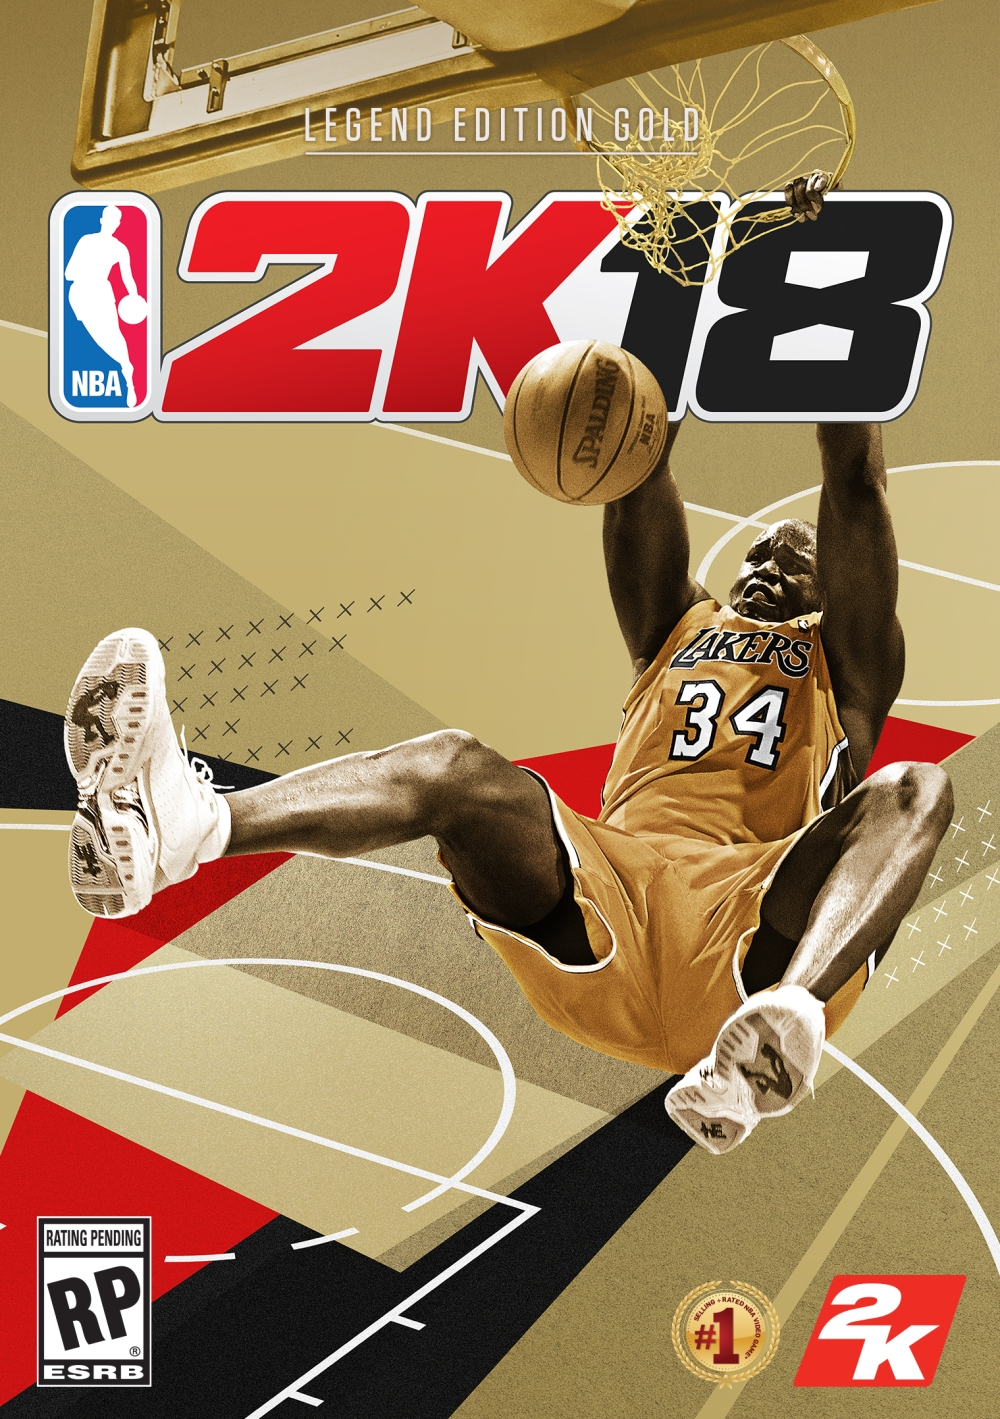 NBA-2K18-Legend-Edition-Gold-Cover.jpg